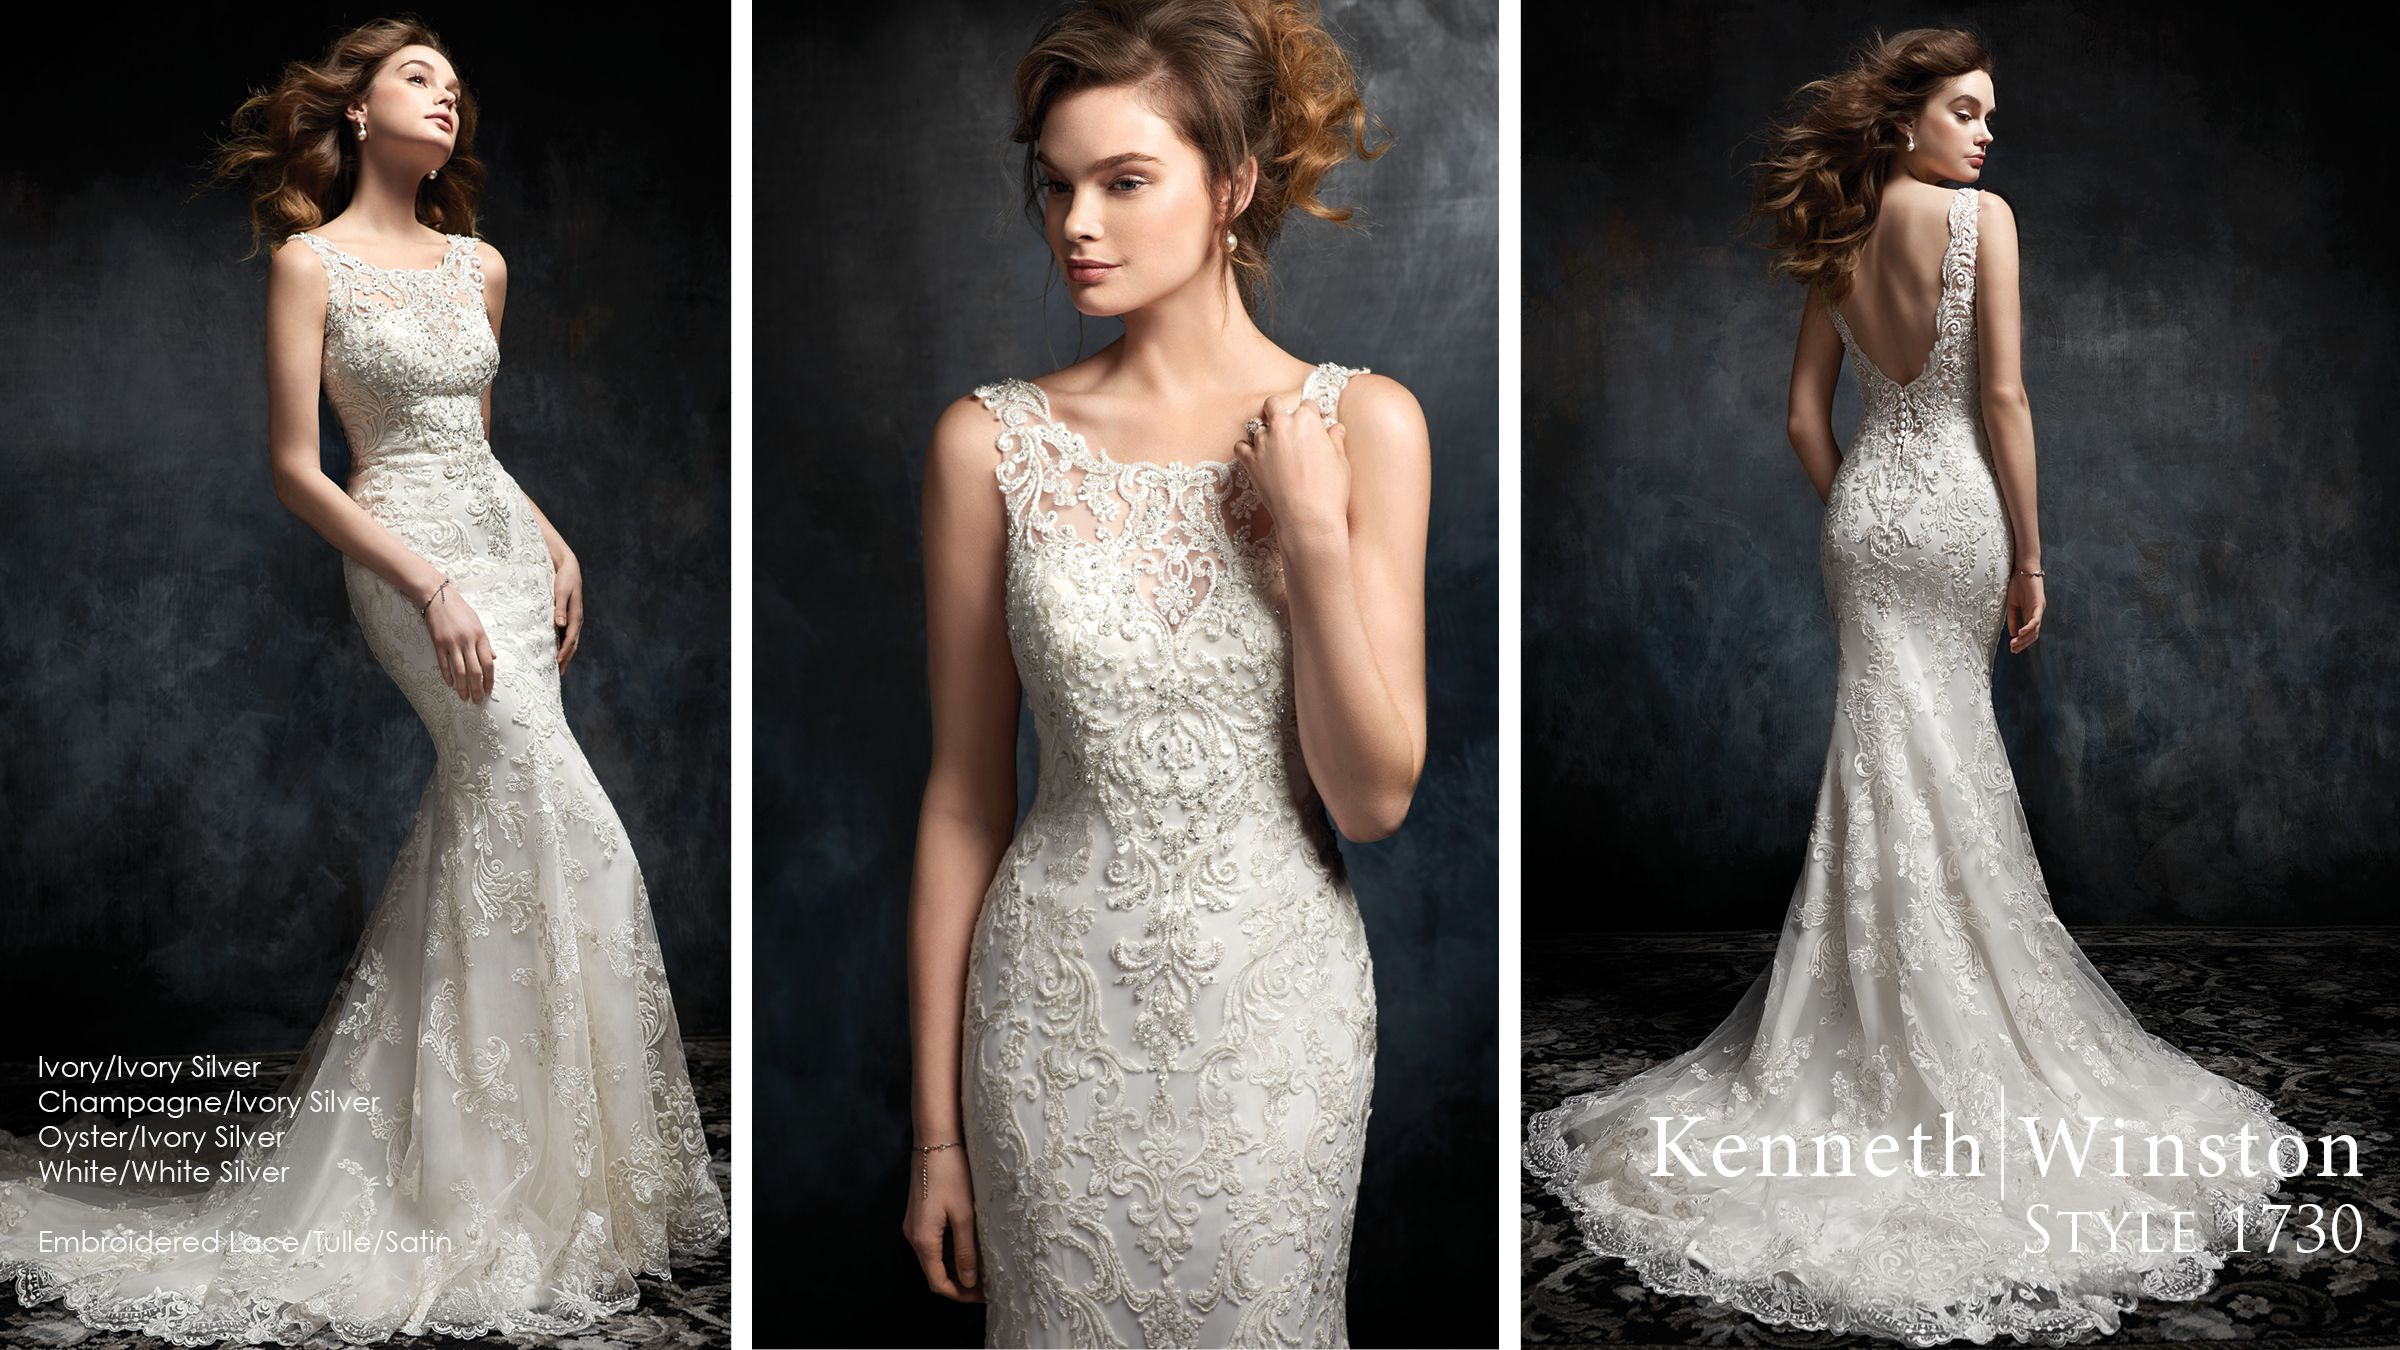 Wedding dresses mermaid style lace  Kenneth Winston Style   gorgeous wedding dress with illusion